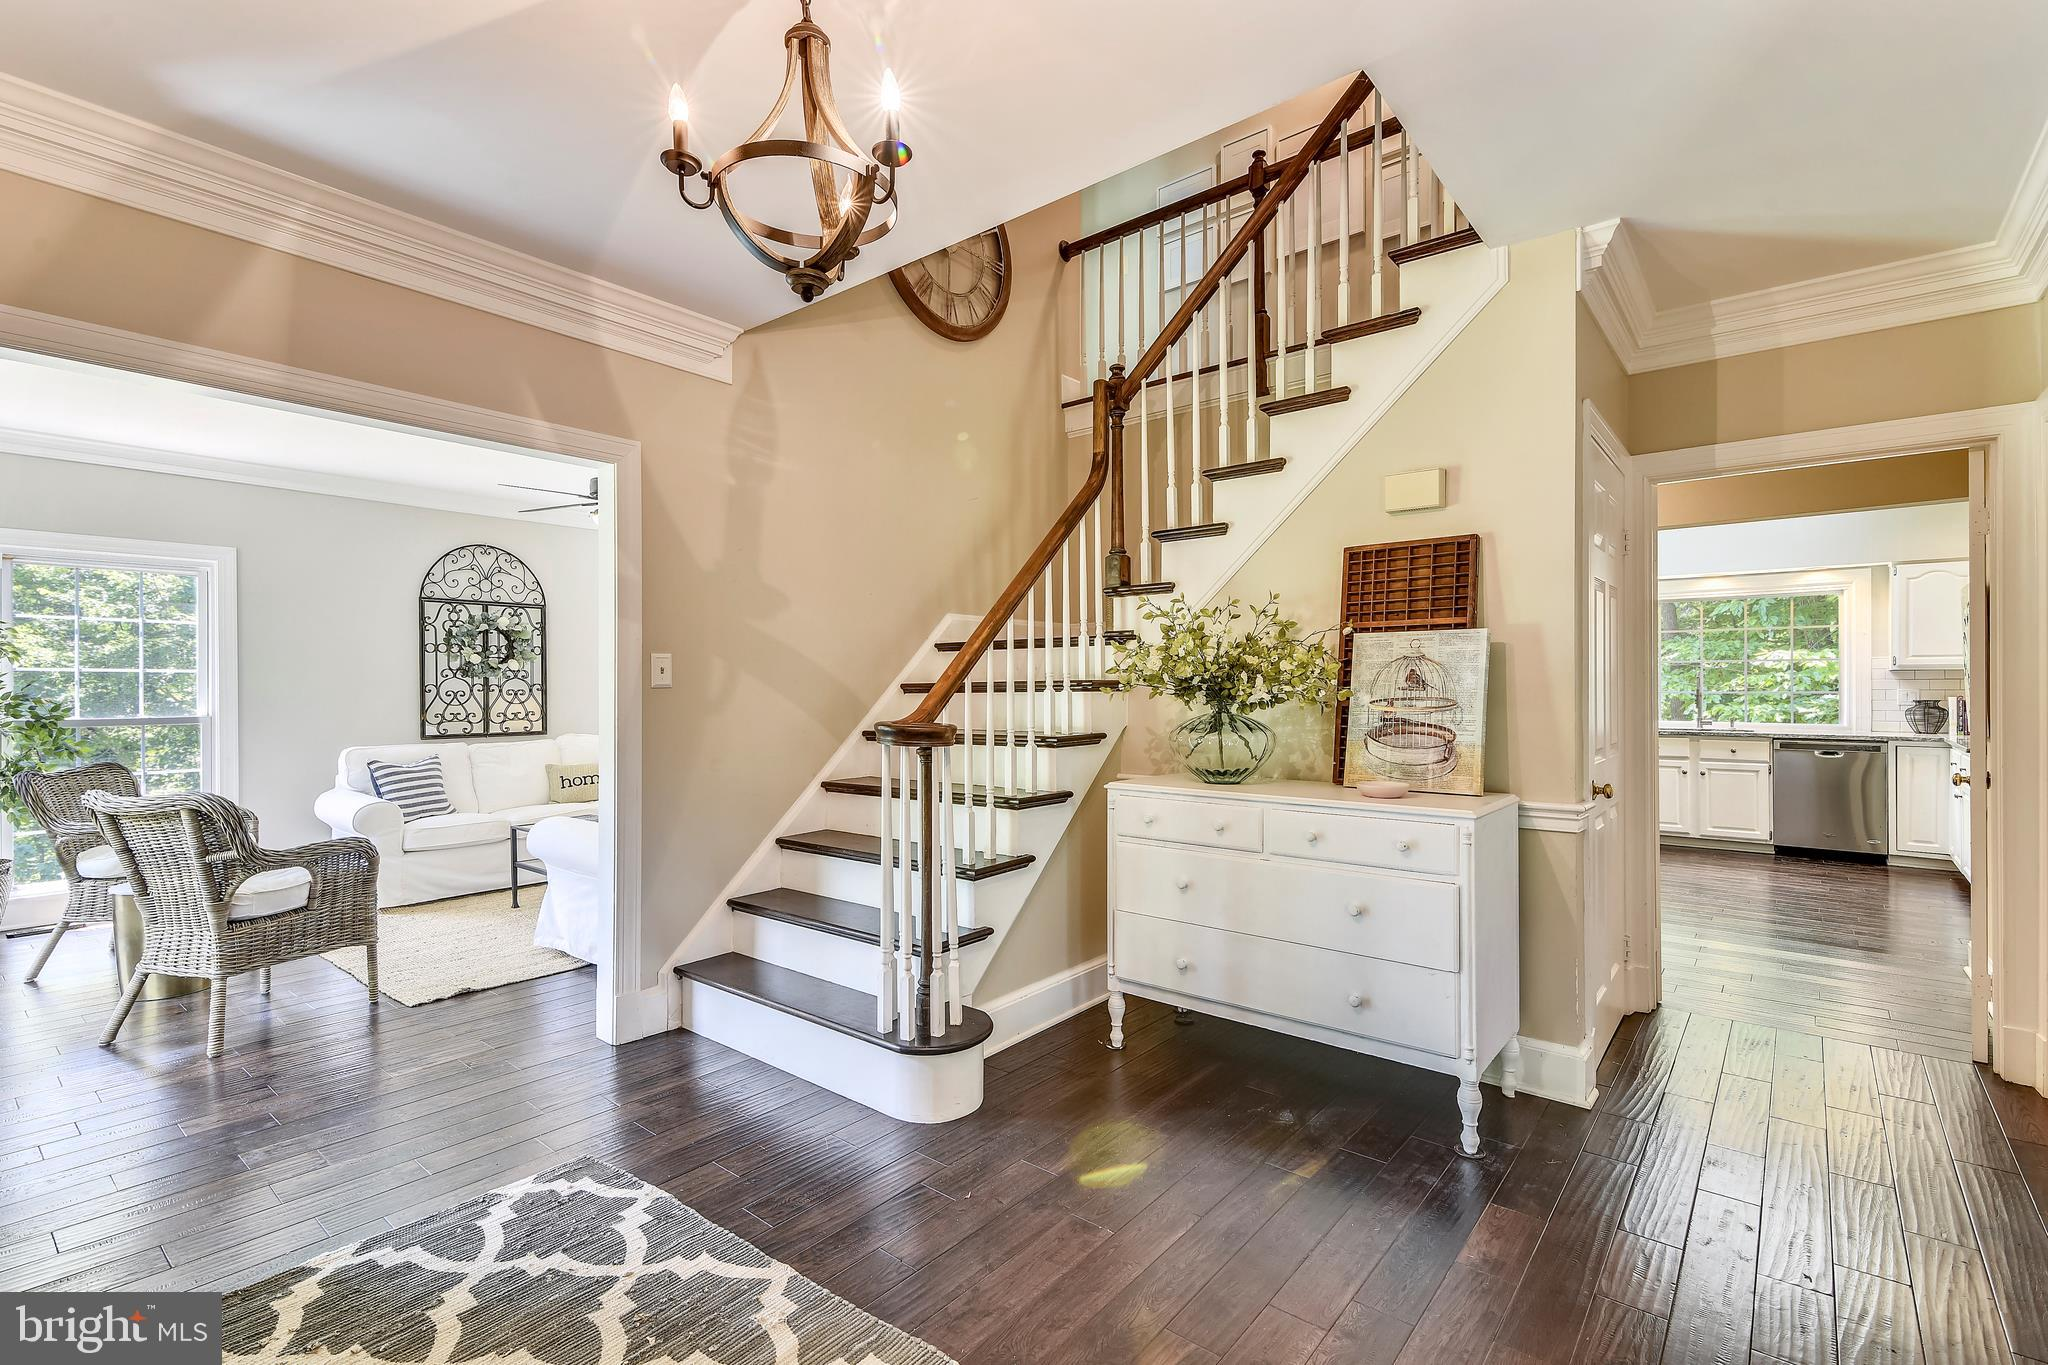 This beautiful, spacious (~4,405 sf of living space), updated home is located on the coveted street